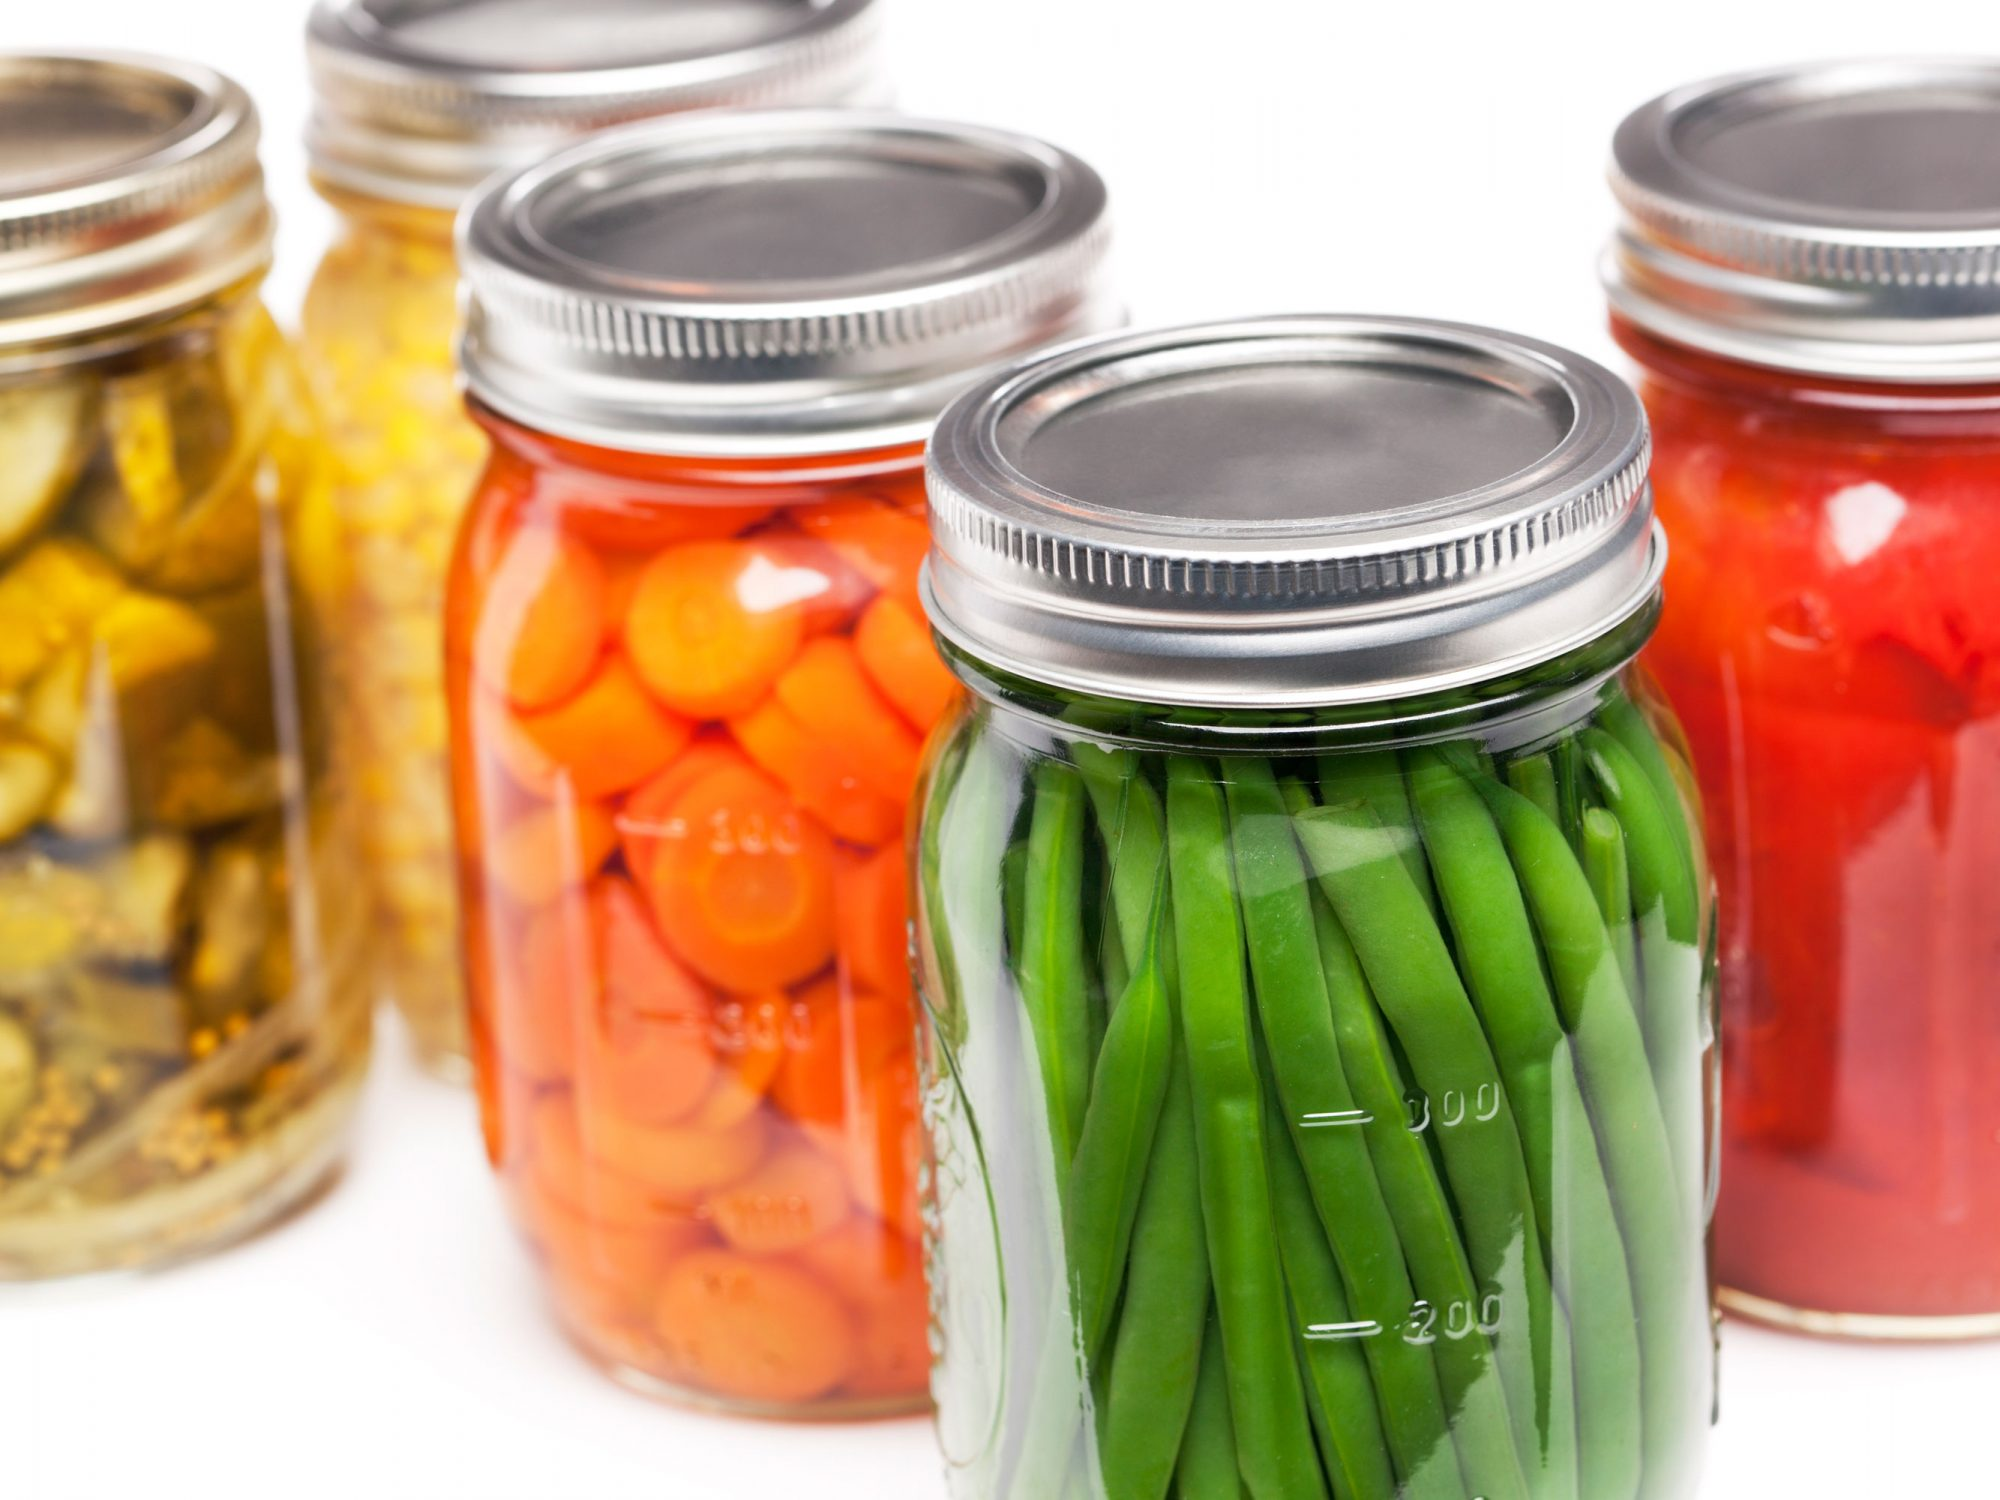 canned food and preserves